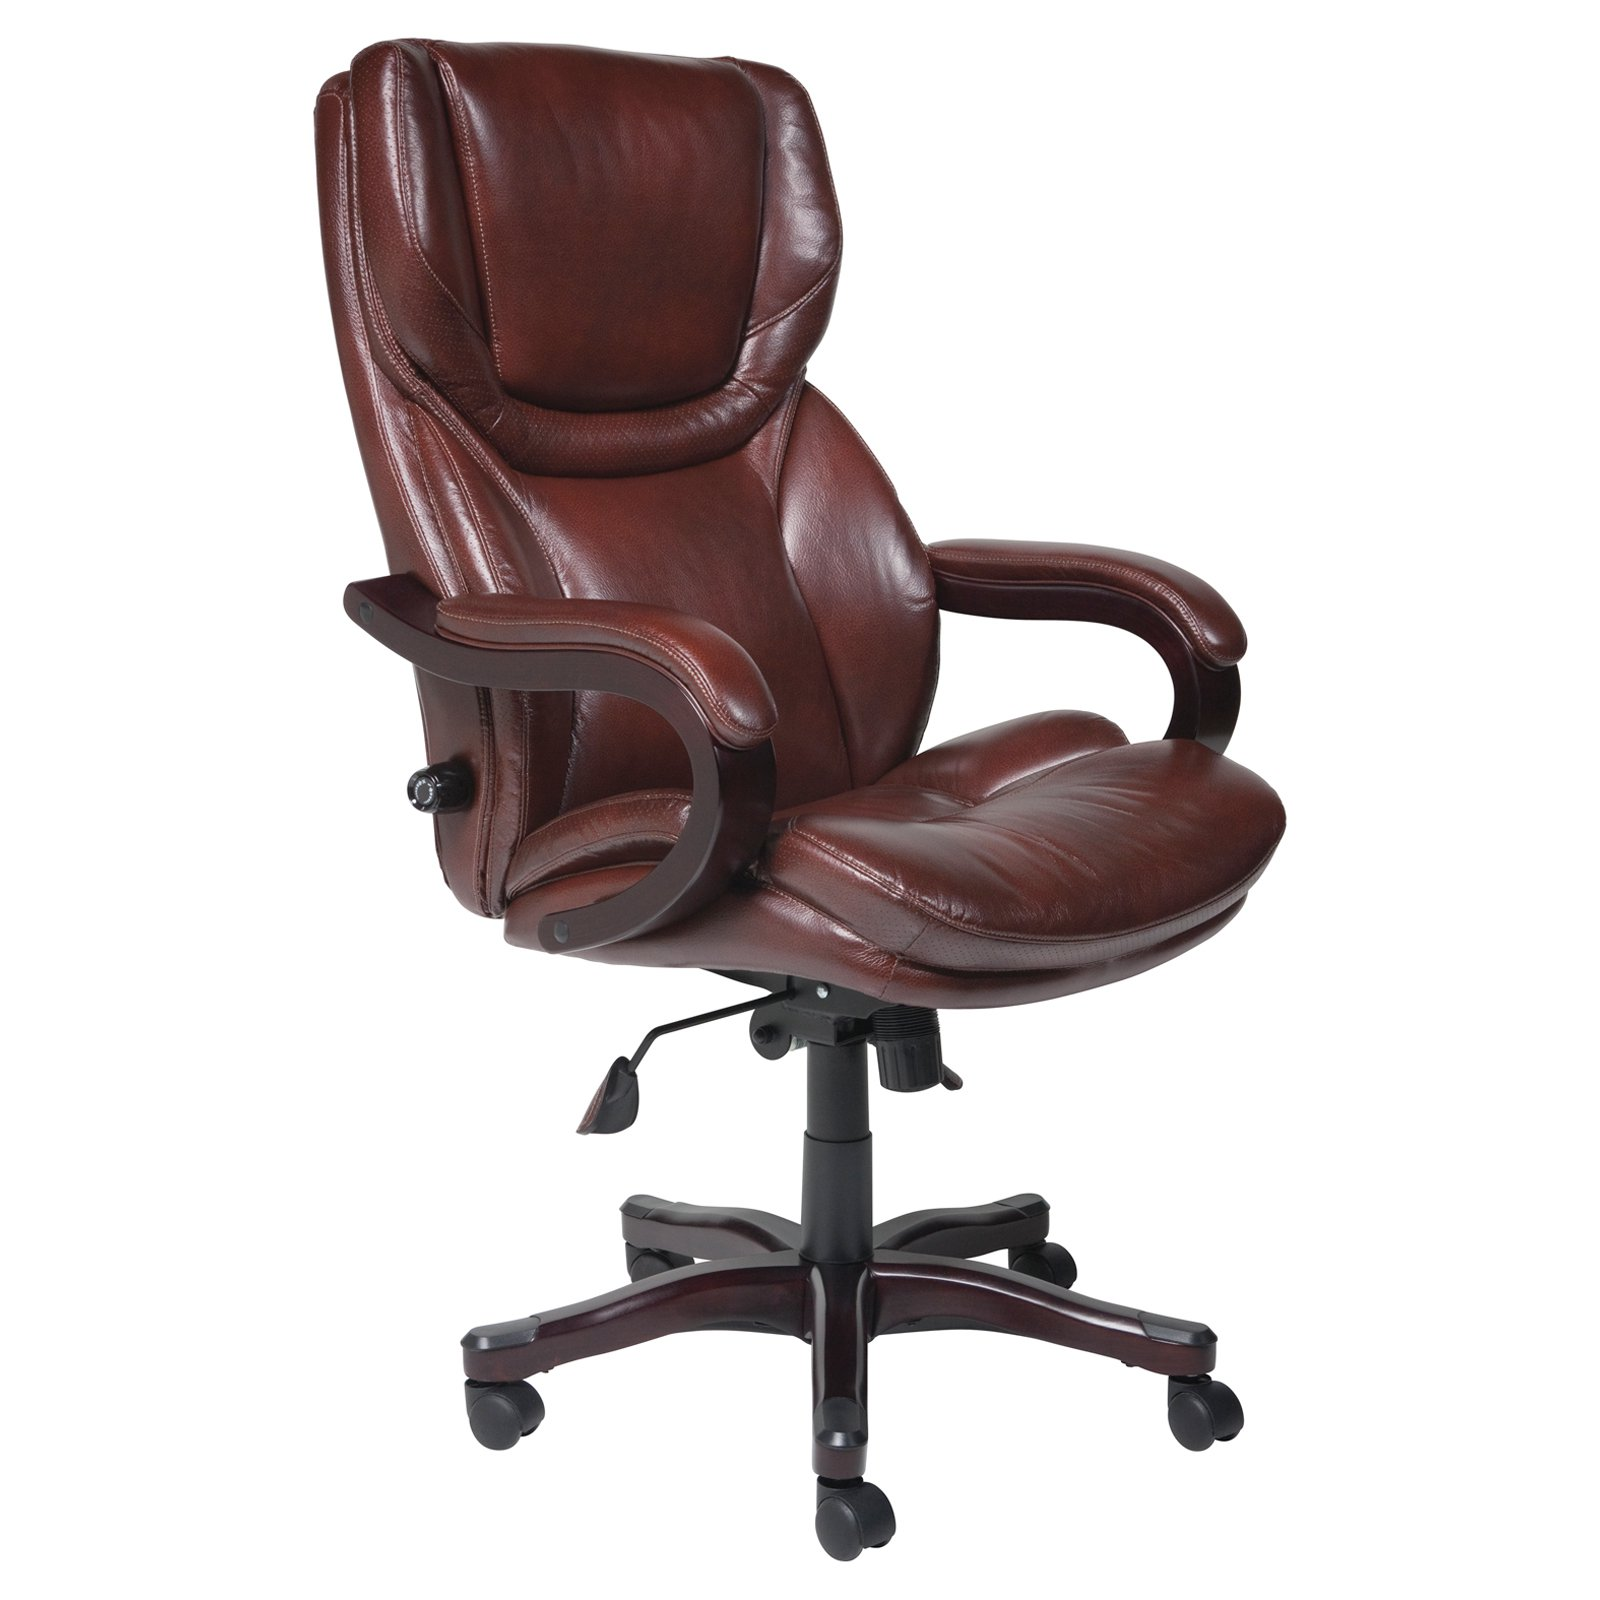 Elegant leather office chair deluxe high back office chair pu leather executive, brown - walmart.com vabebko